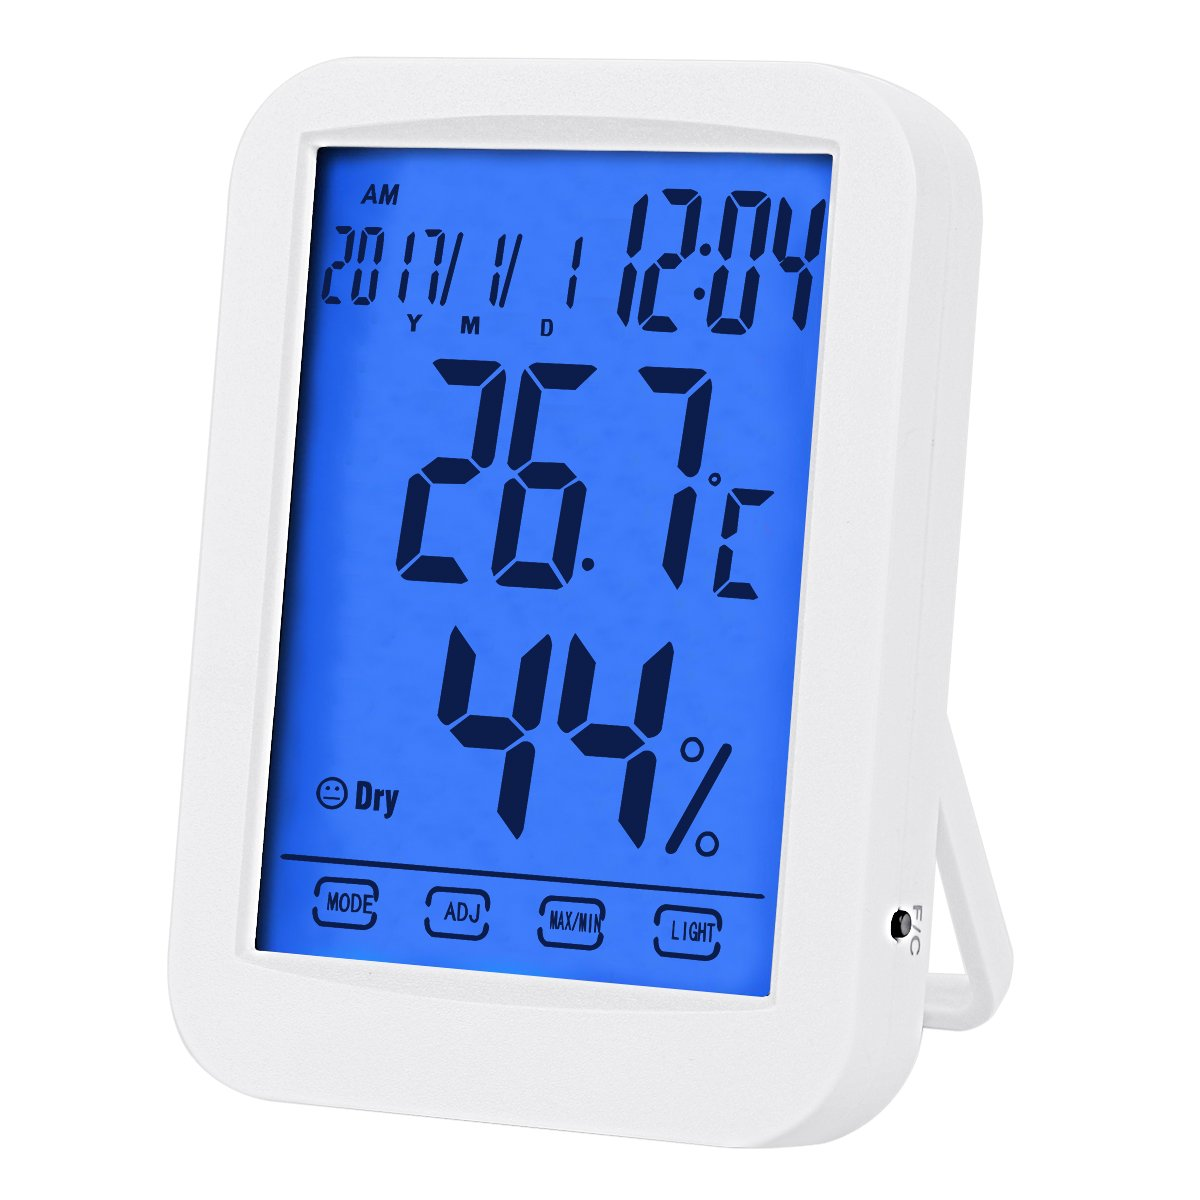 Temperature Hygrometer, Indoor Digital Hygrometer, Multifunctional Temperature Humidity Meter with Blue Backlight, Jumbo Smart Touchscreen with Clock (Not Include Battery) (White) DEXUNWEI